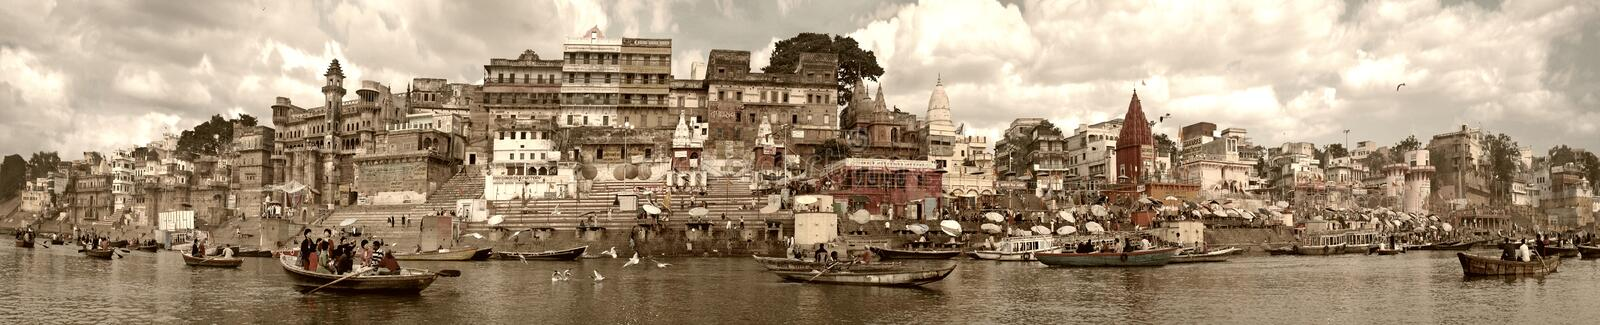 Varanasi, India - November 2009: Boats with tourists and locals floating along the embankment, ghats and ancient buildings. royalty free stock photography